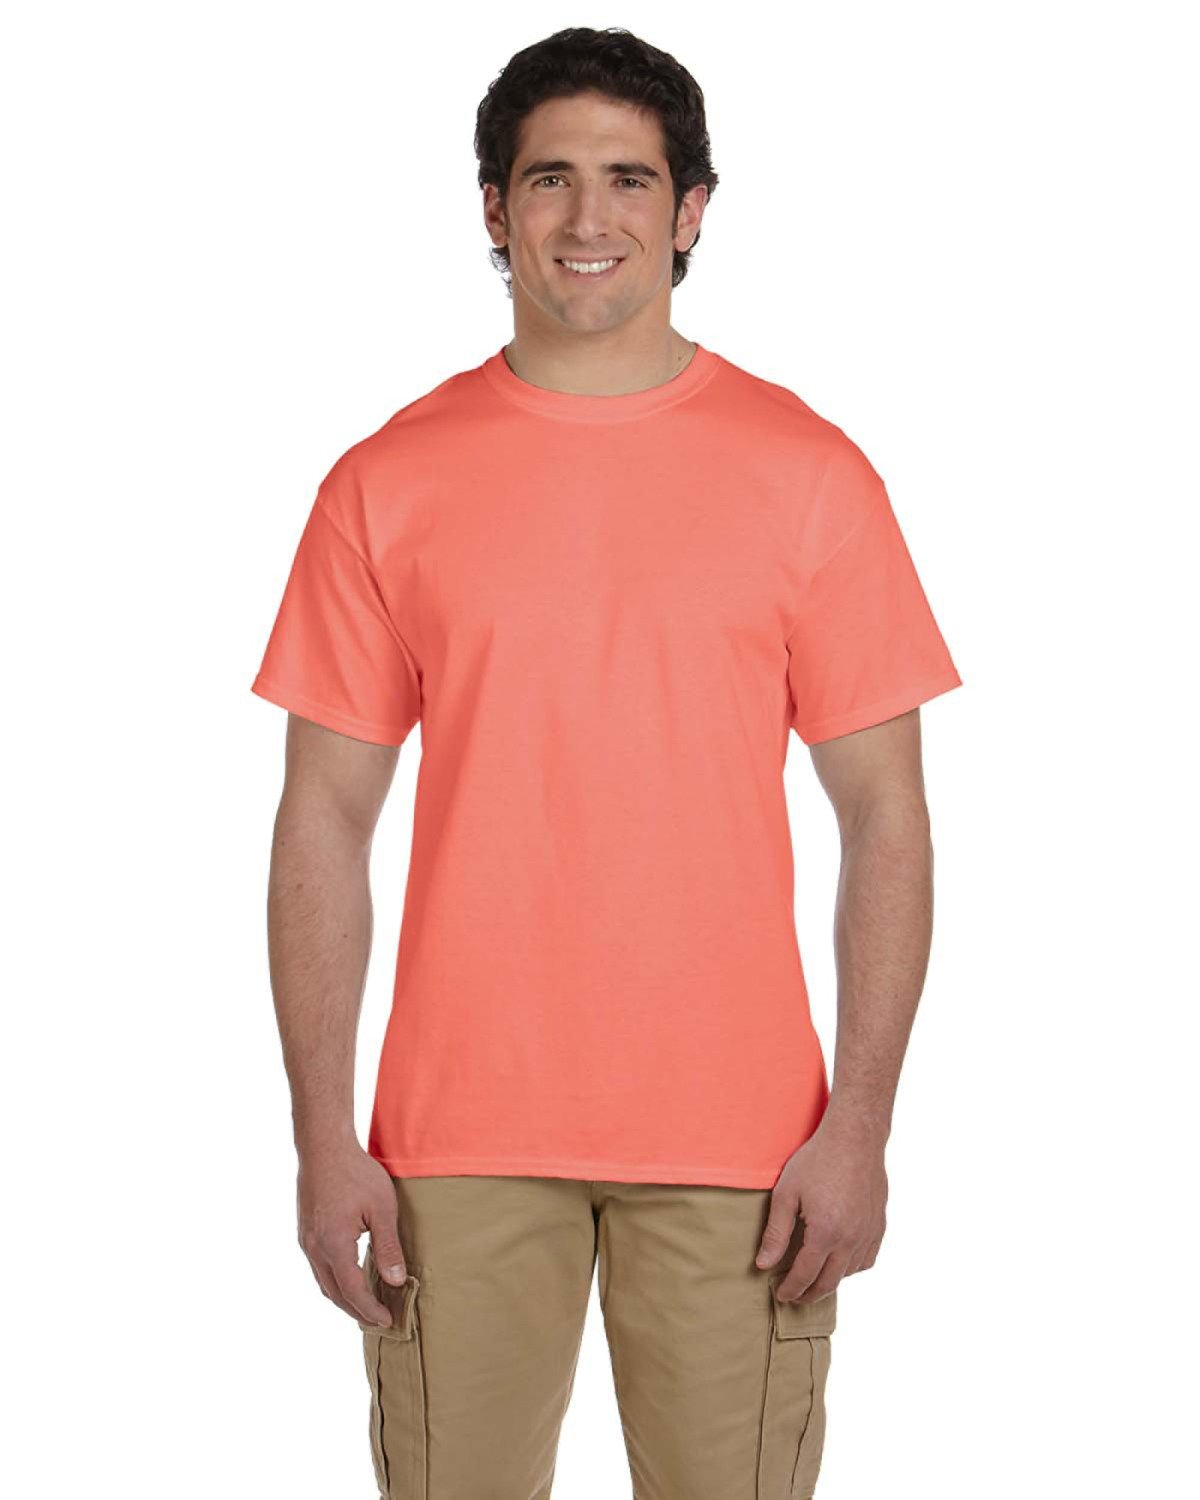 Fruit of the Loom Adult HD Cotton™ T-Shirt RETRO HTH CORAL